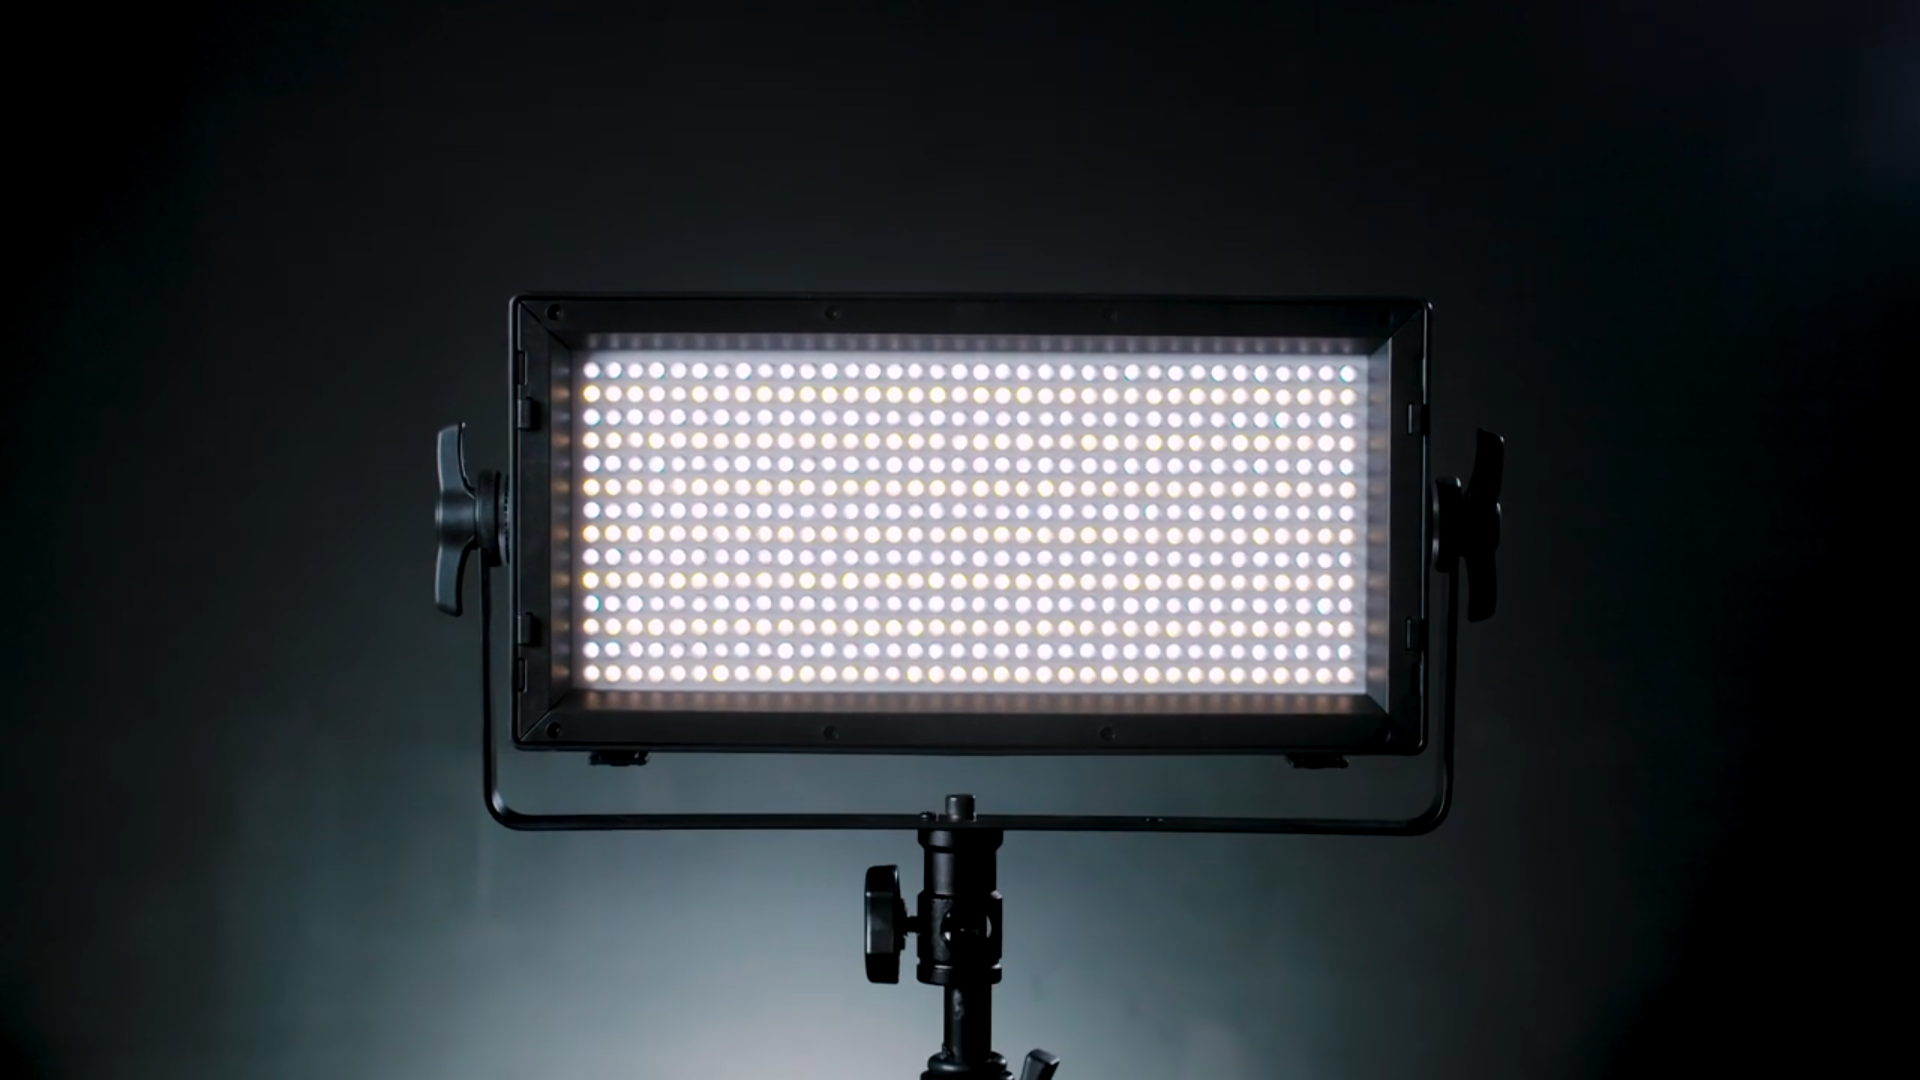 14 Recommended Lighting Kits for Photography | B&H Explora